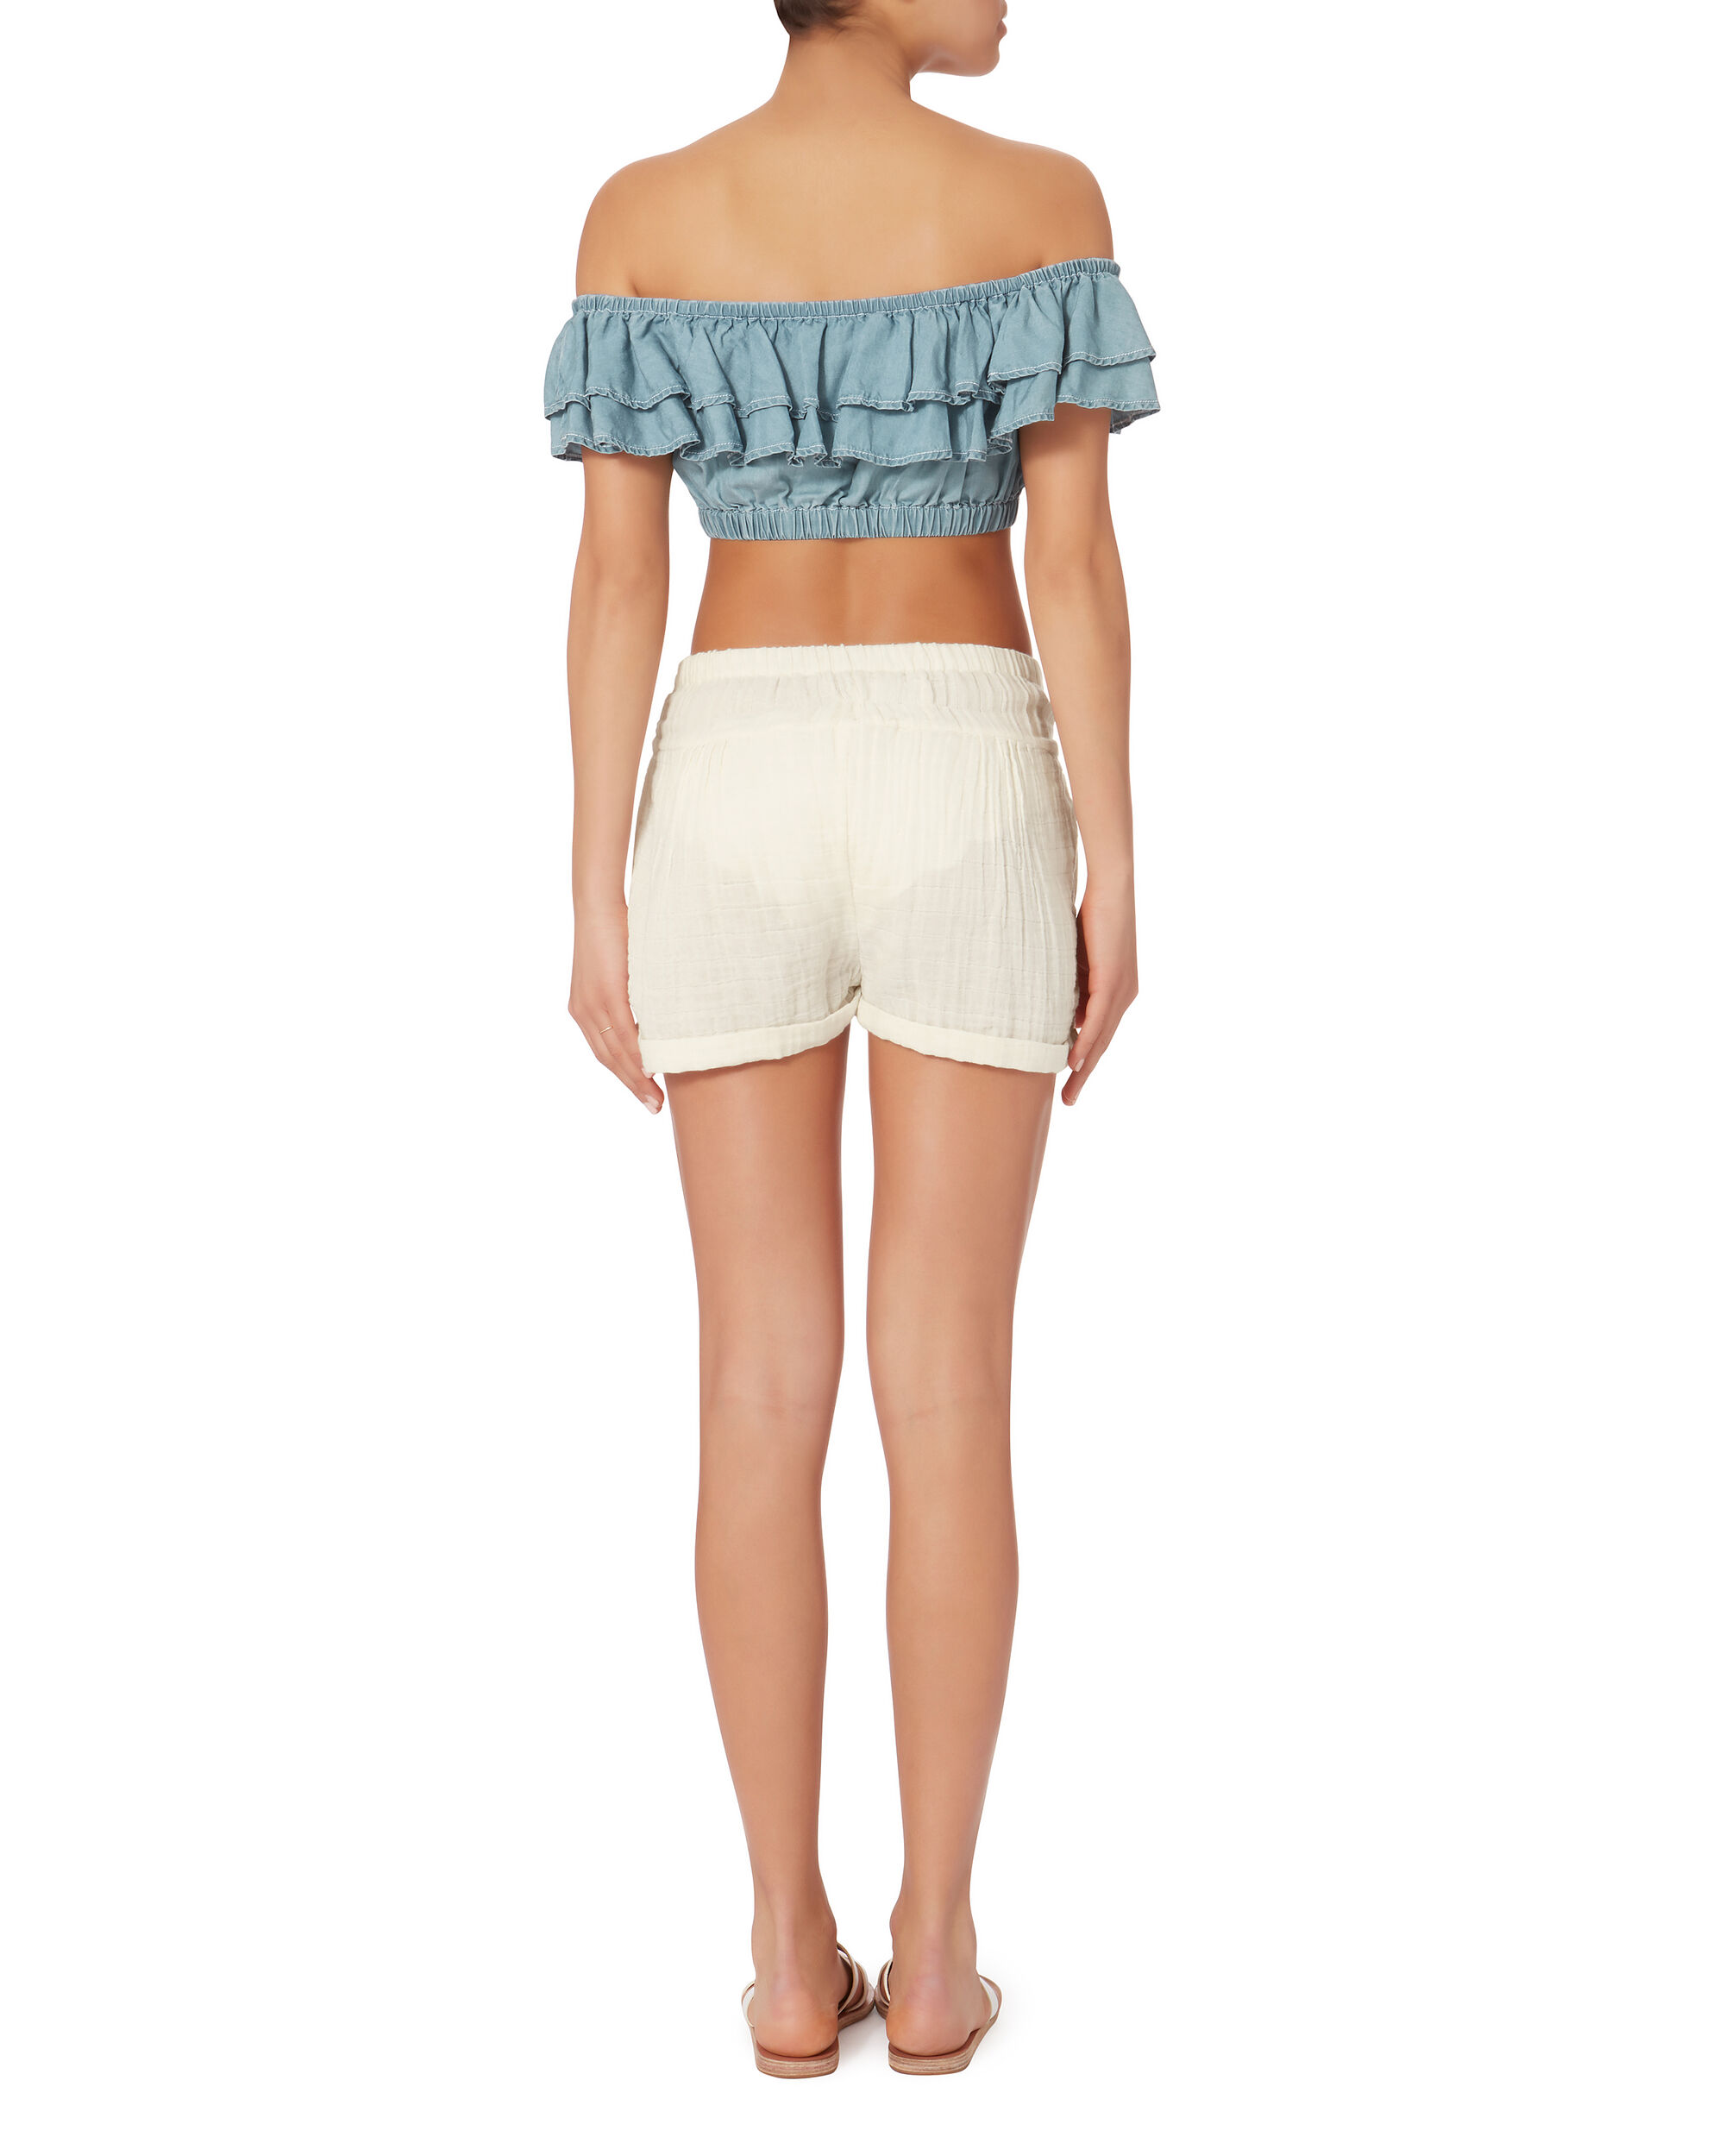 Stand Still Chambray Crop Top, DENIM, hi-res